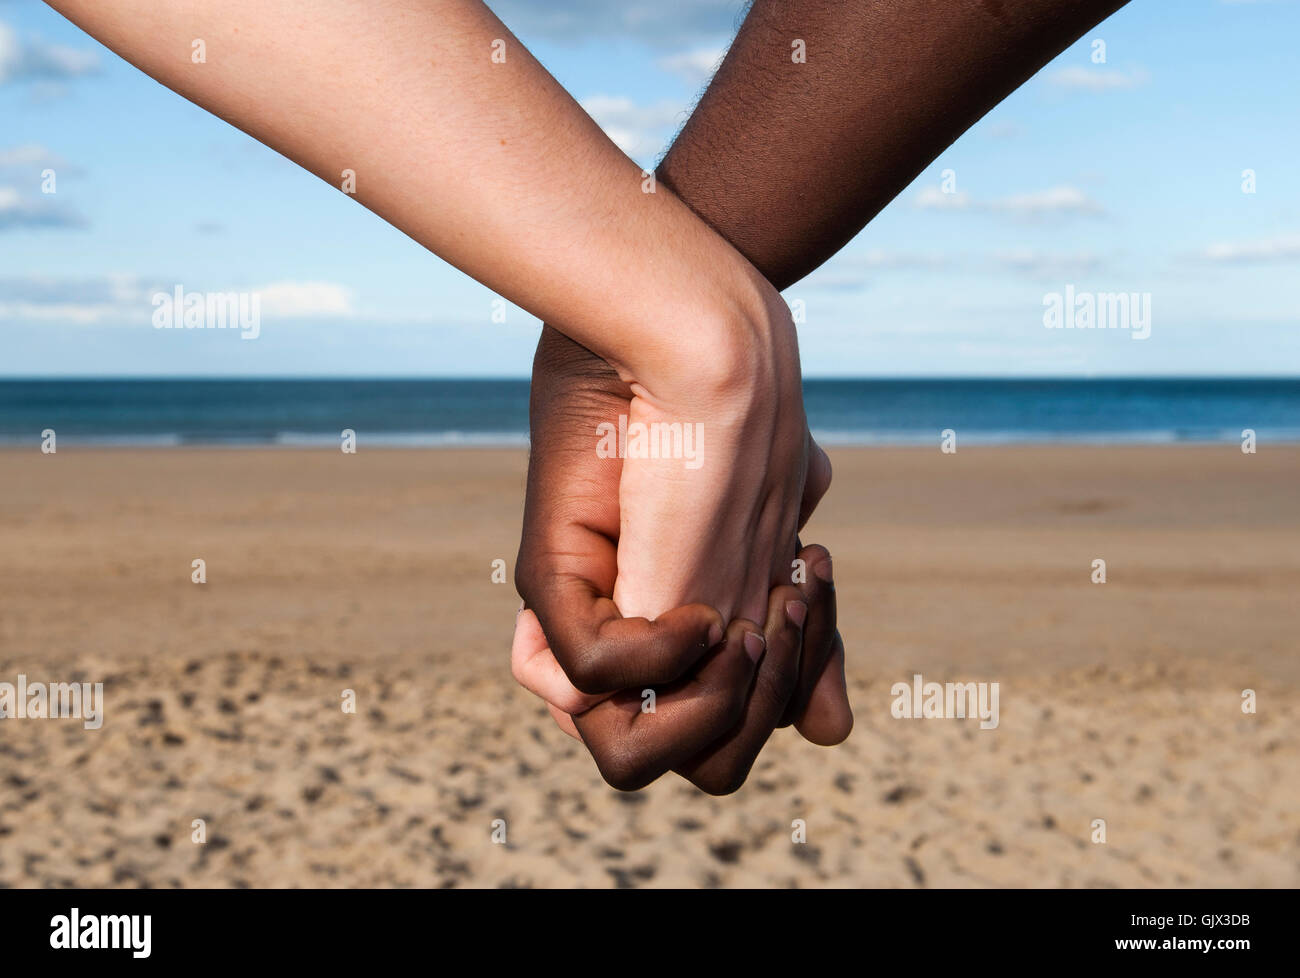 Interracial couples holding hands images 352